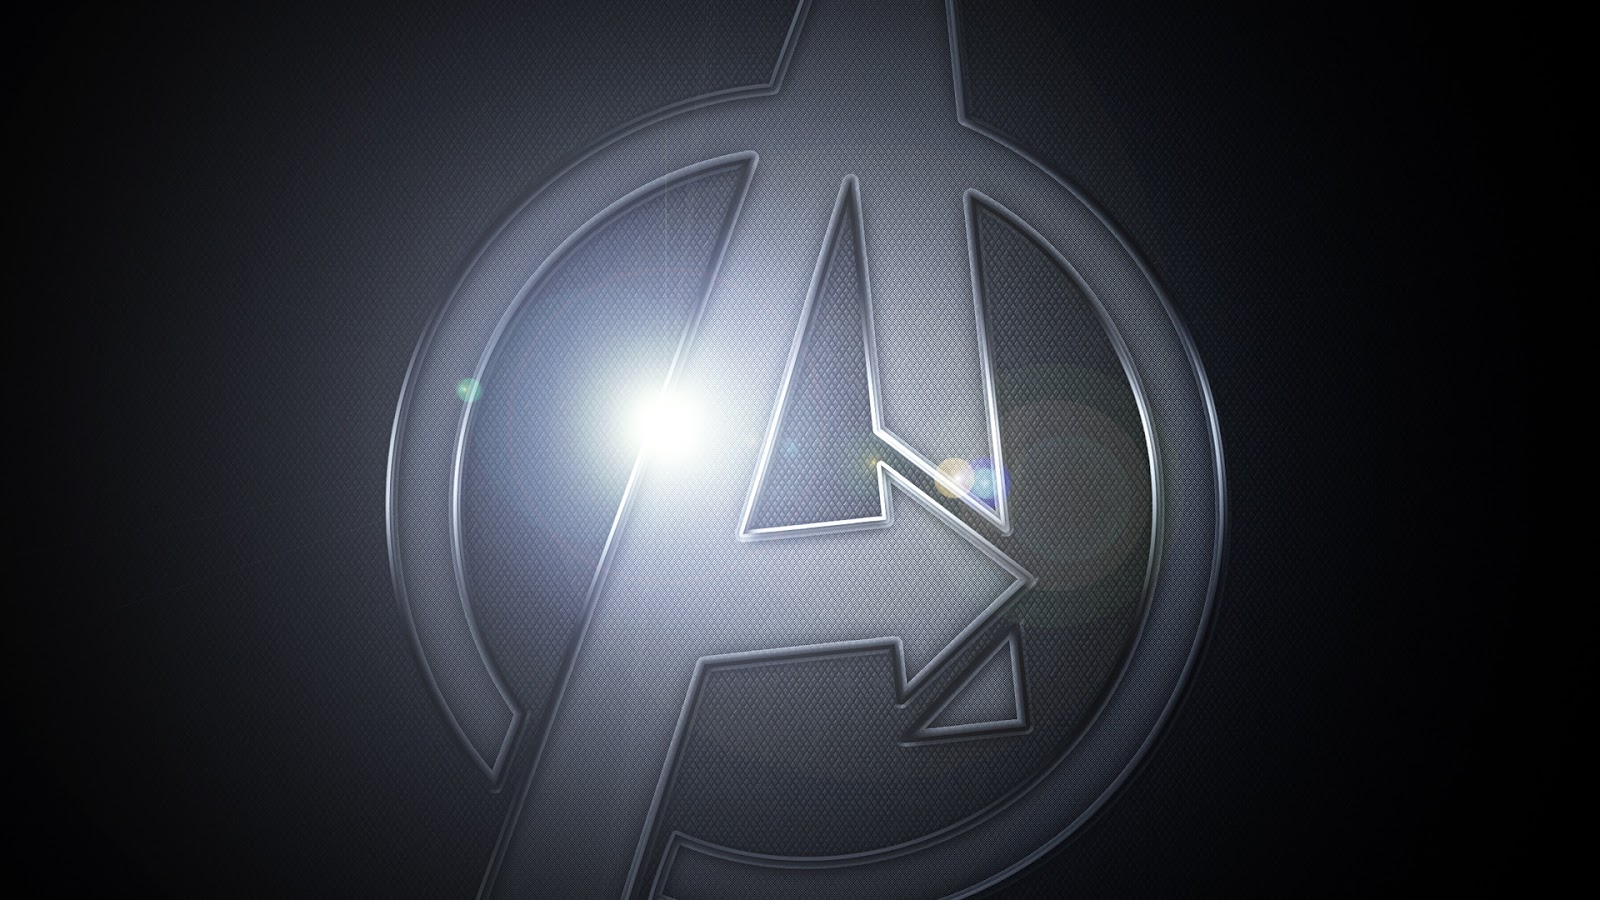 HD White logo Avengers Movie Wallpaper